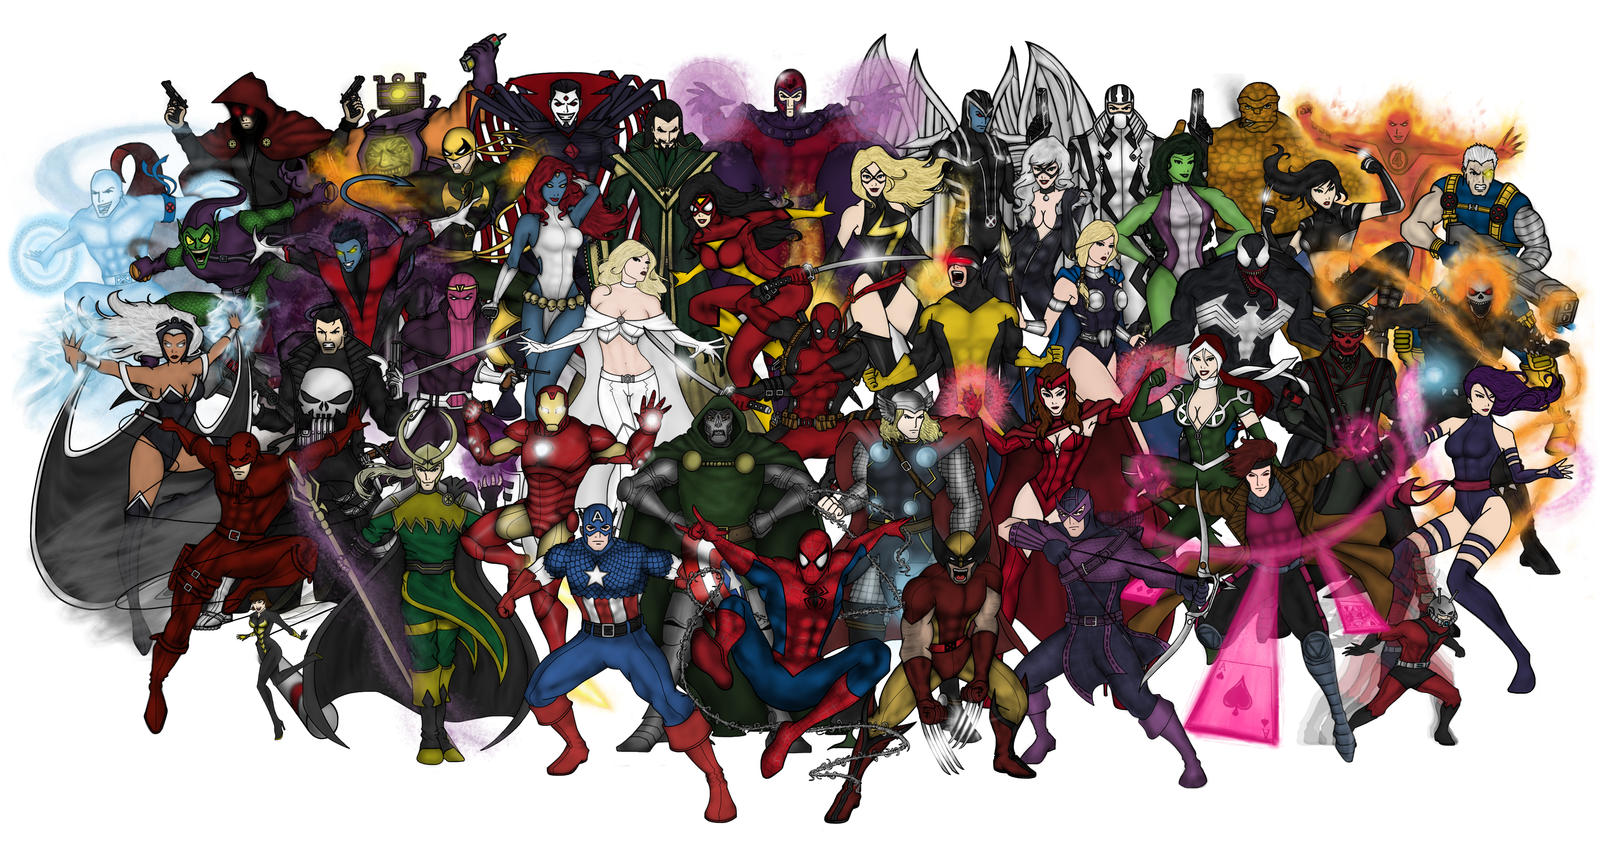 Marvel Malvorlagen Marvel Superhero The Marvel Super: Marvel Super Heroes By Vindications On DeviantArt